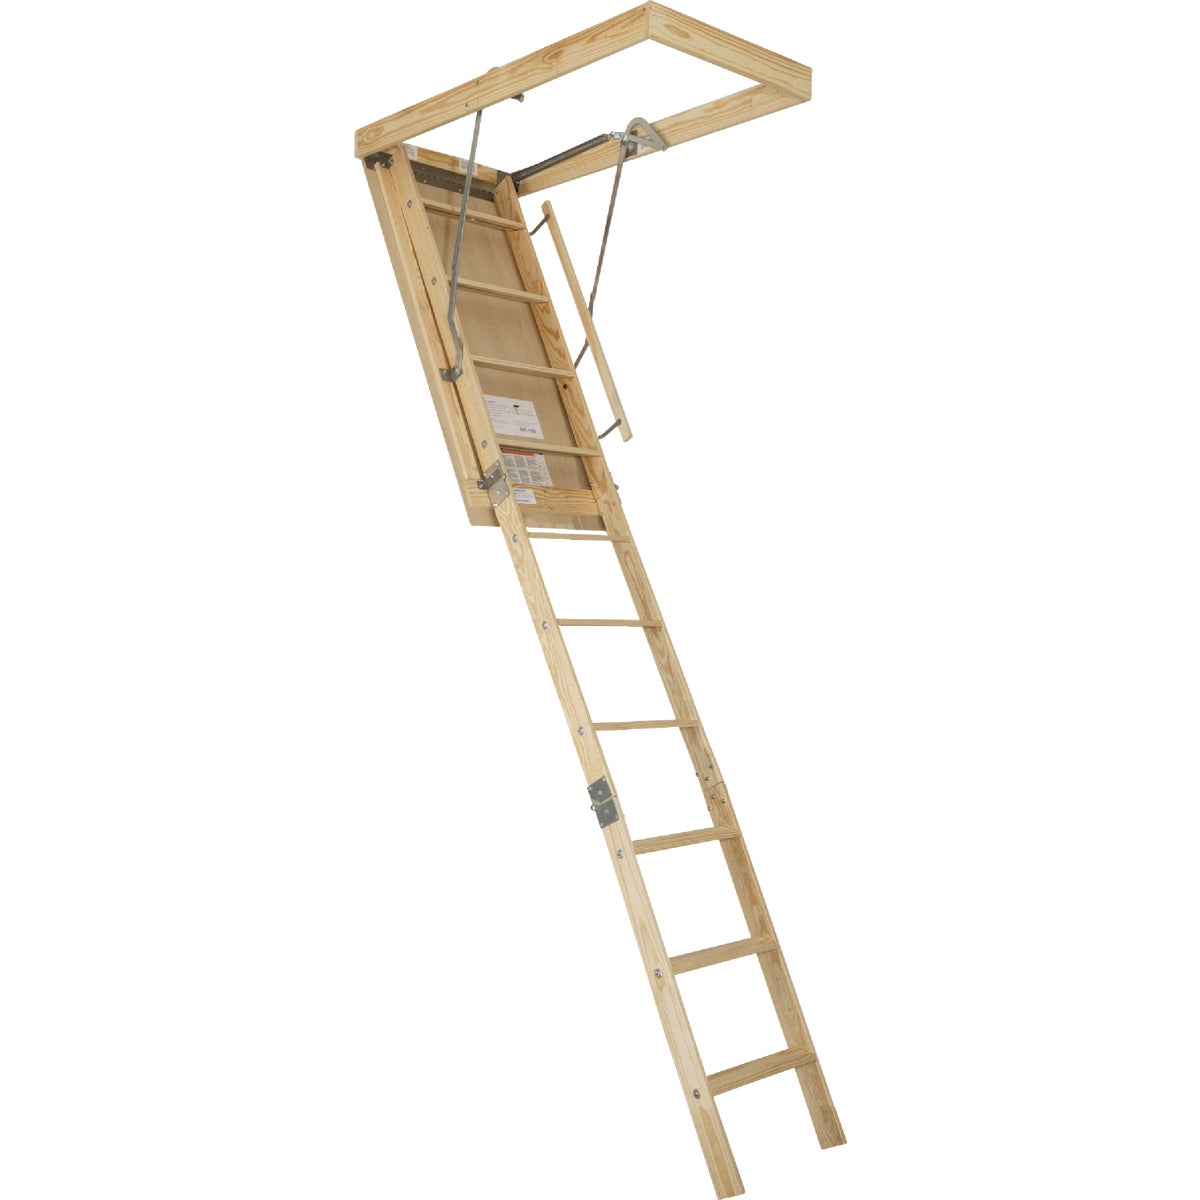 25X105 WNDSR ATTIC STAIR - BE89 by Century Stairs